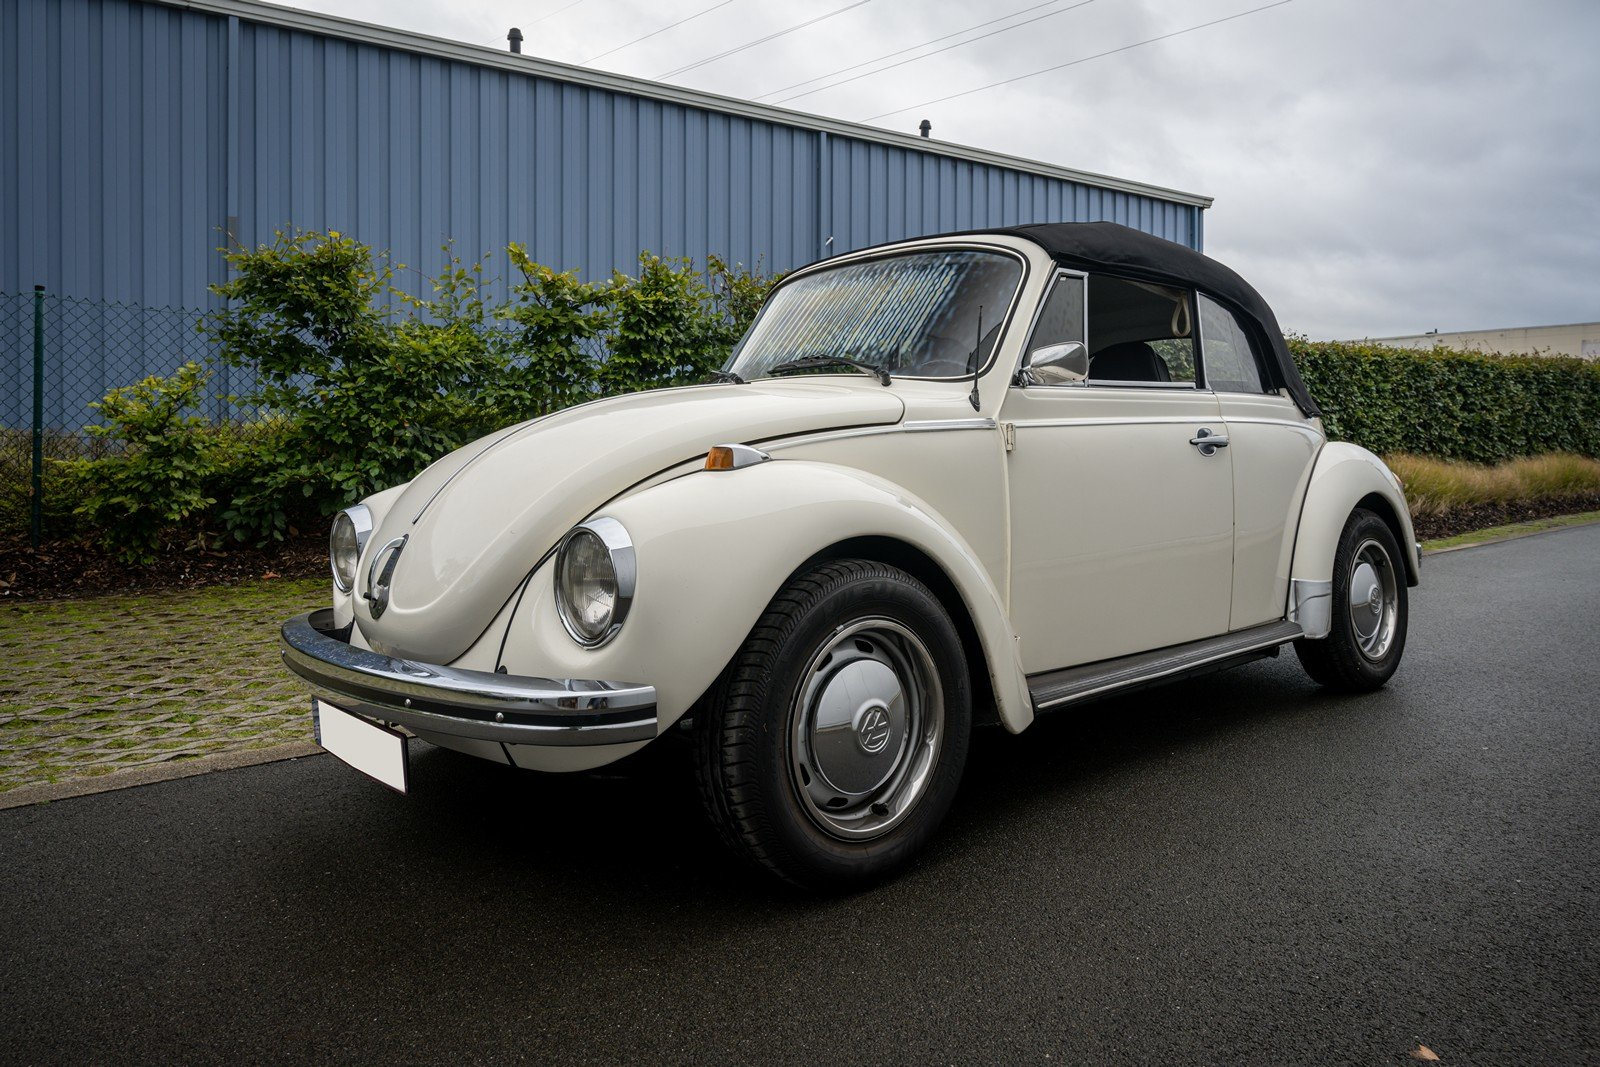 1973 Volkswagen Beetle Type 1303 Cabriolet For Sale (picture 5 of 39)